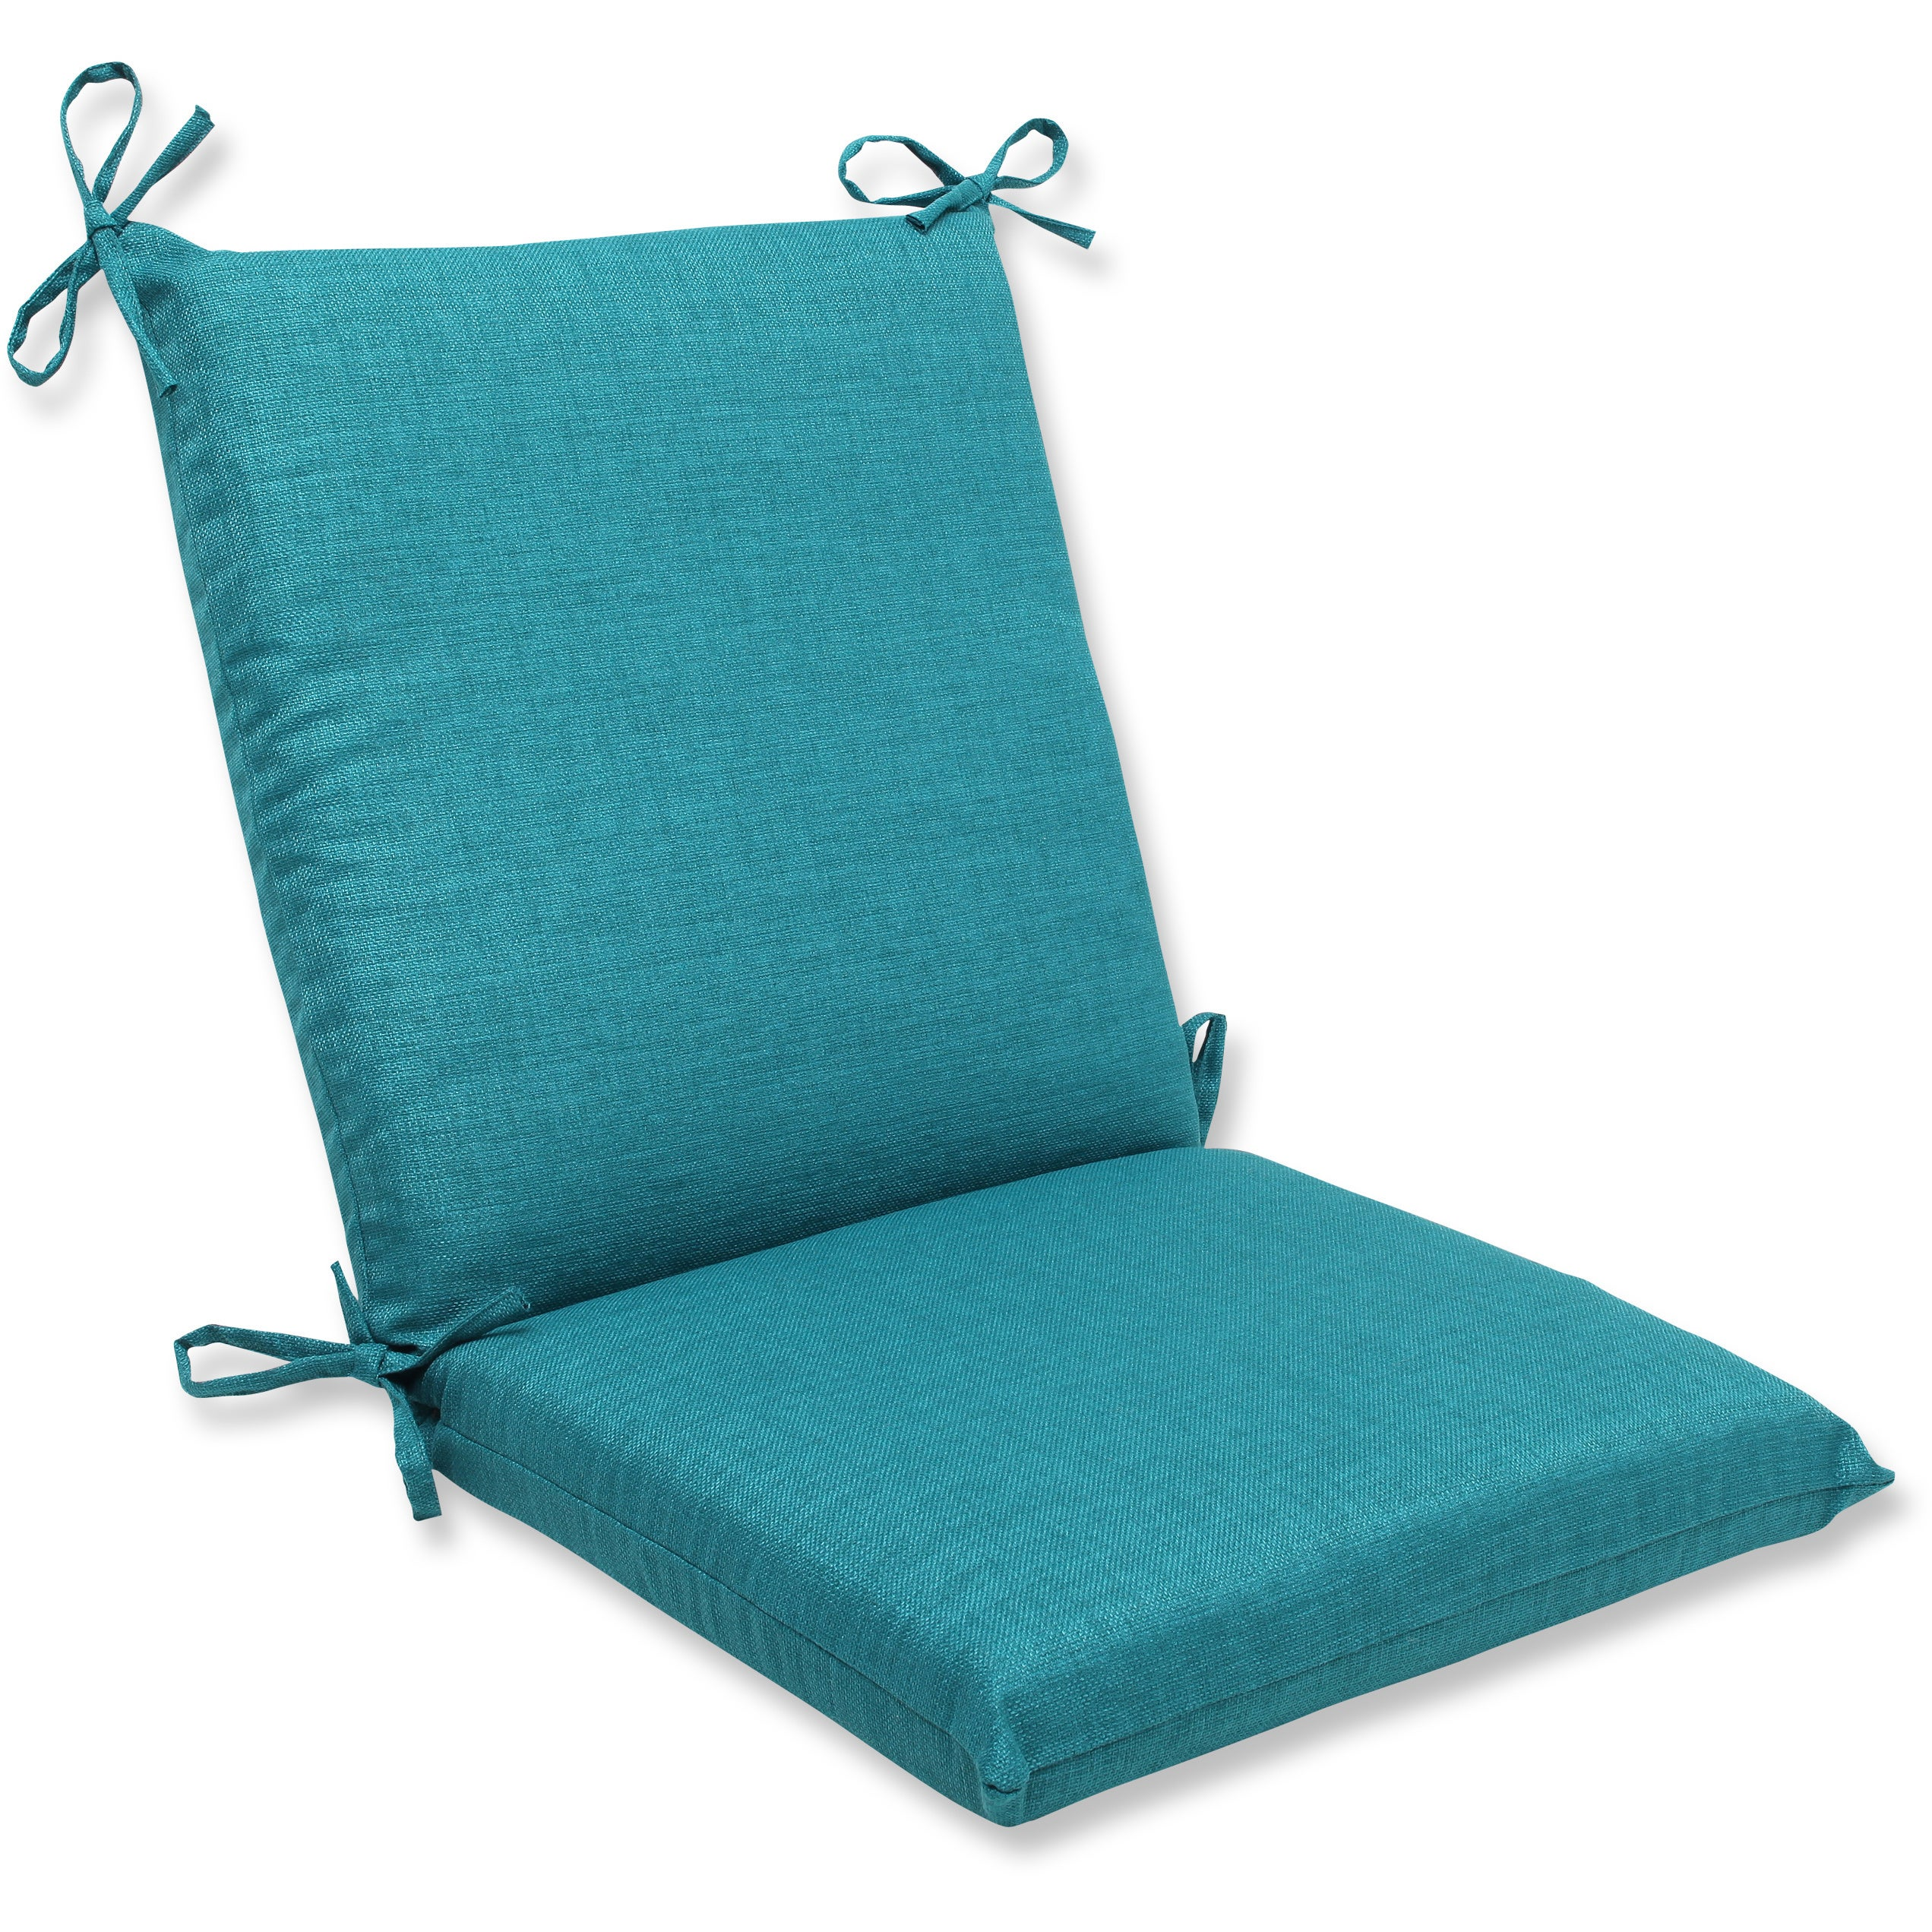 Pillow Perfect Outdoor Teal Squared Corners Chair Cushion at Sears.com